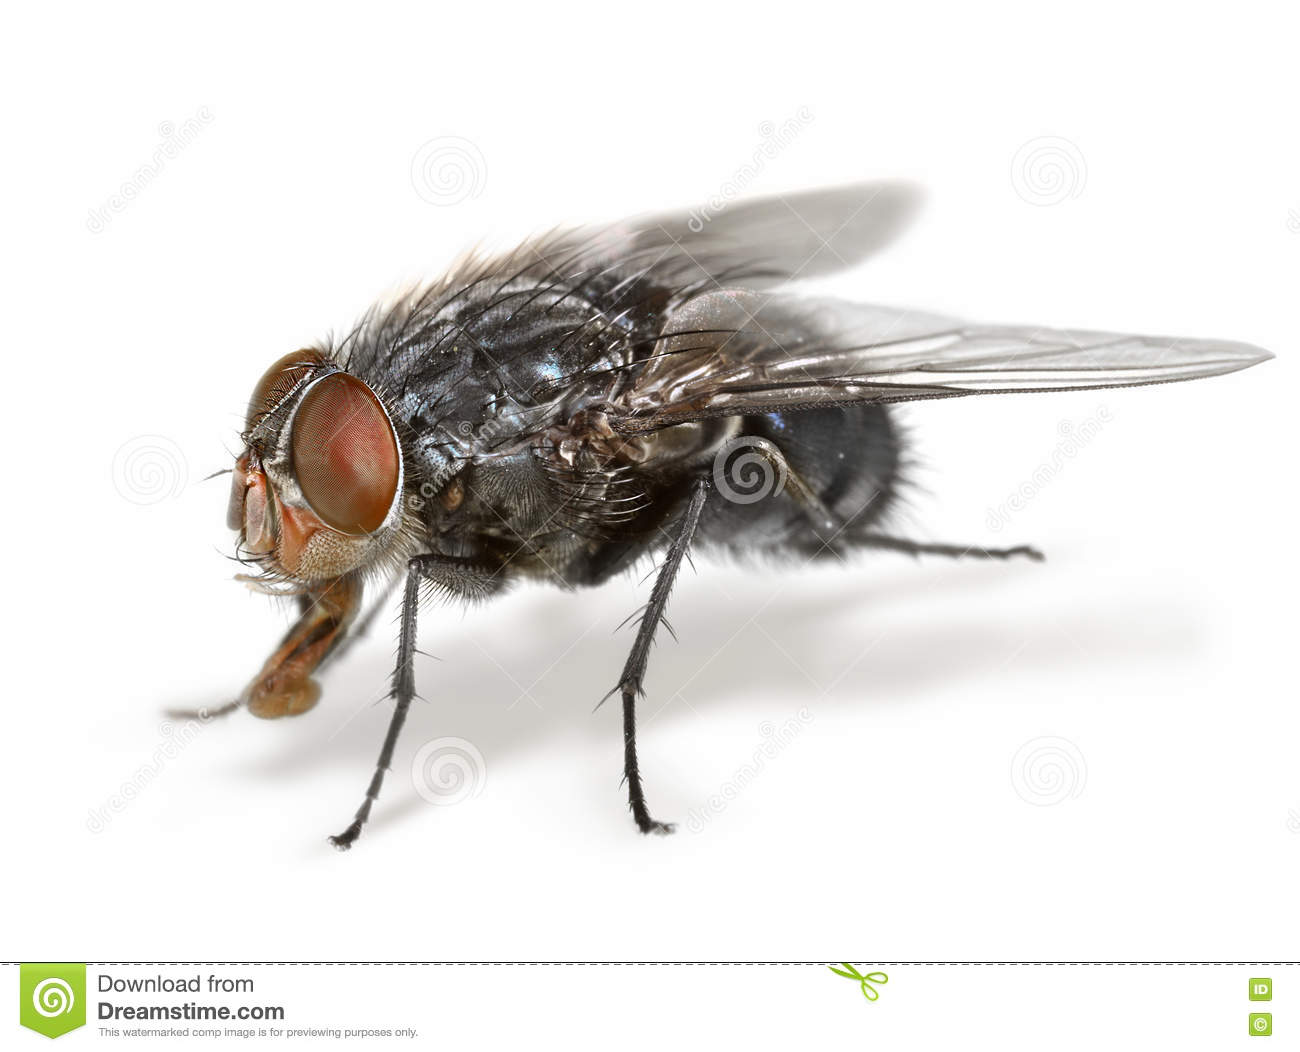 Anatomy of a fly stock photo. Image of closeup, close - 77007980